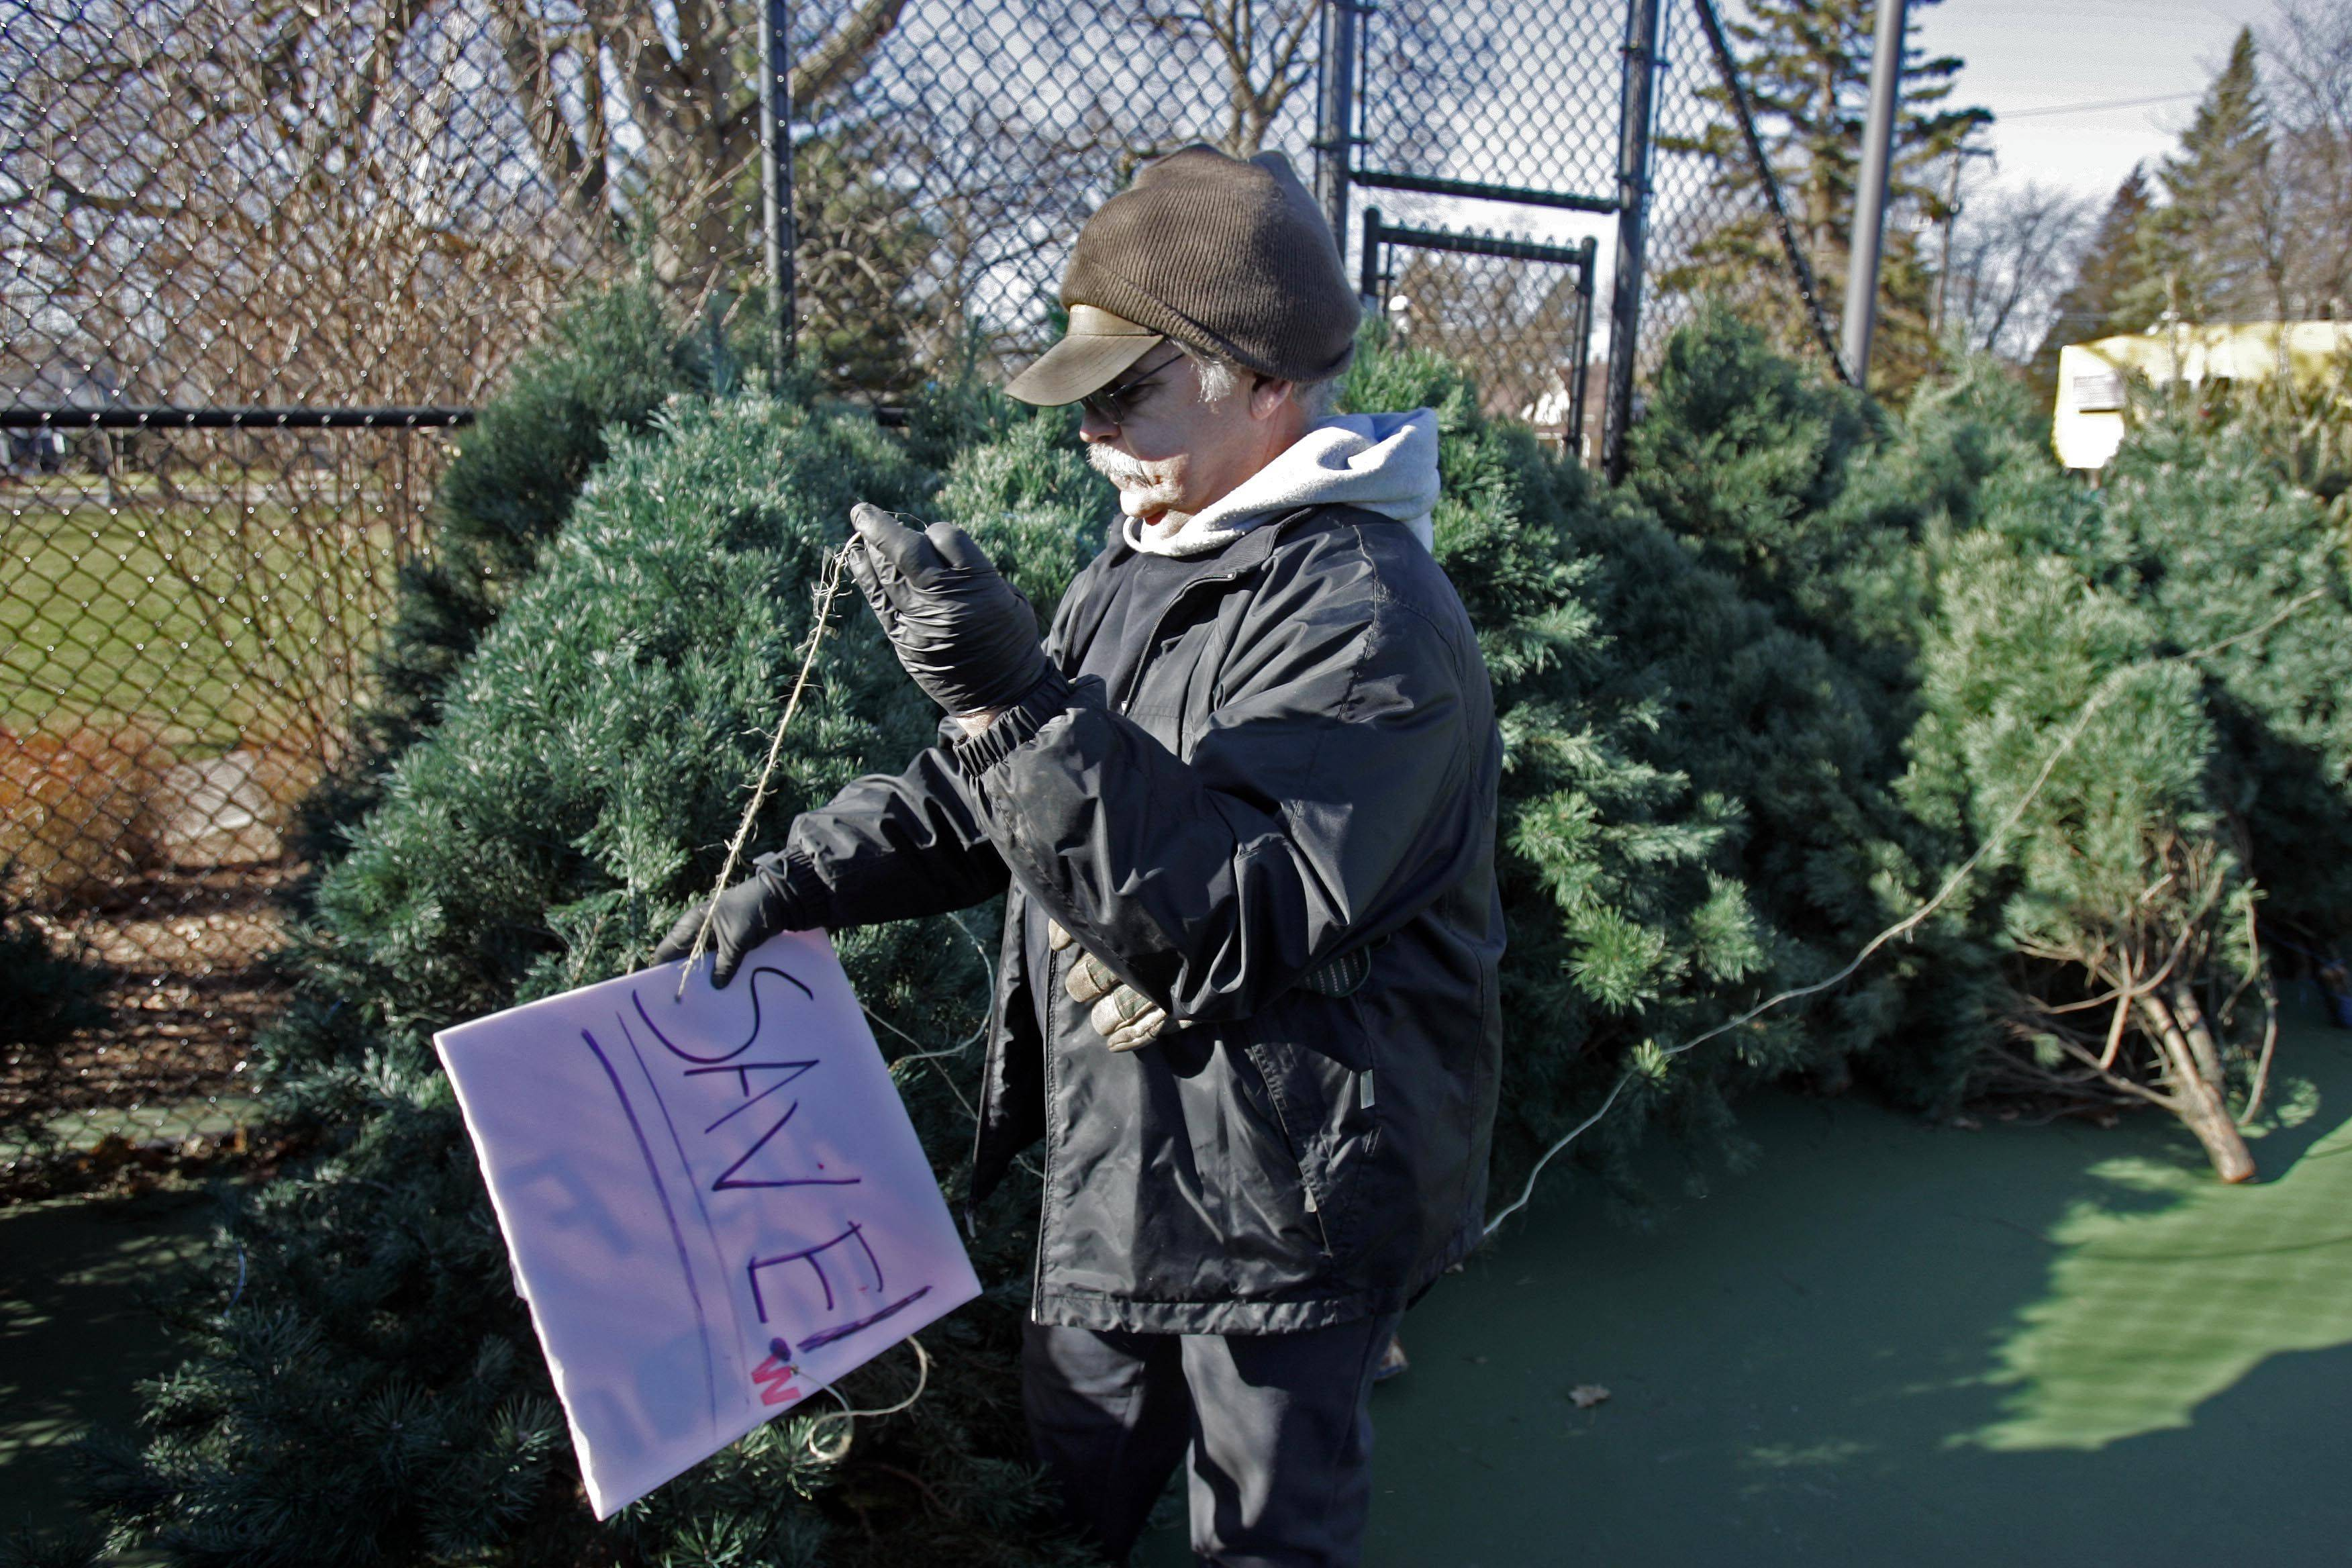 John Cichowski prepares to put a save sign on a few of the trees at the West Dundee and Carpentersville Lions Christmas tree sale at Grafelman Park in West Dundee. They will be open Thursdays and Fridays from 6-8 p.m. and Saturday and Sunday from 10 a.m. to 6 p.m. The trees are being saved for the Festival of Trees next Friday.